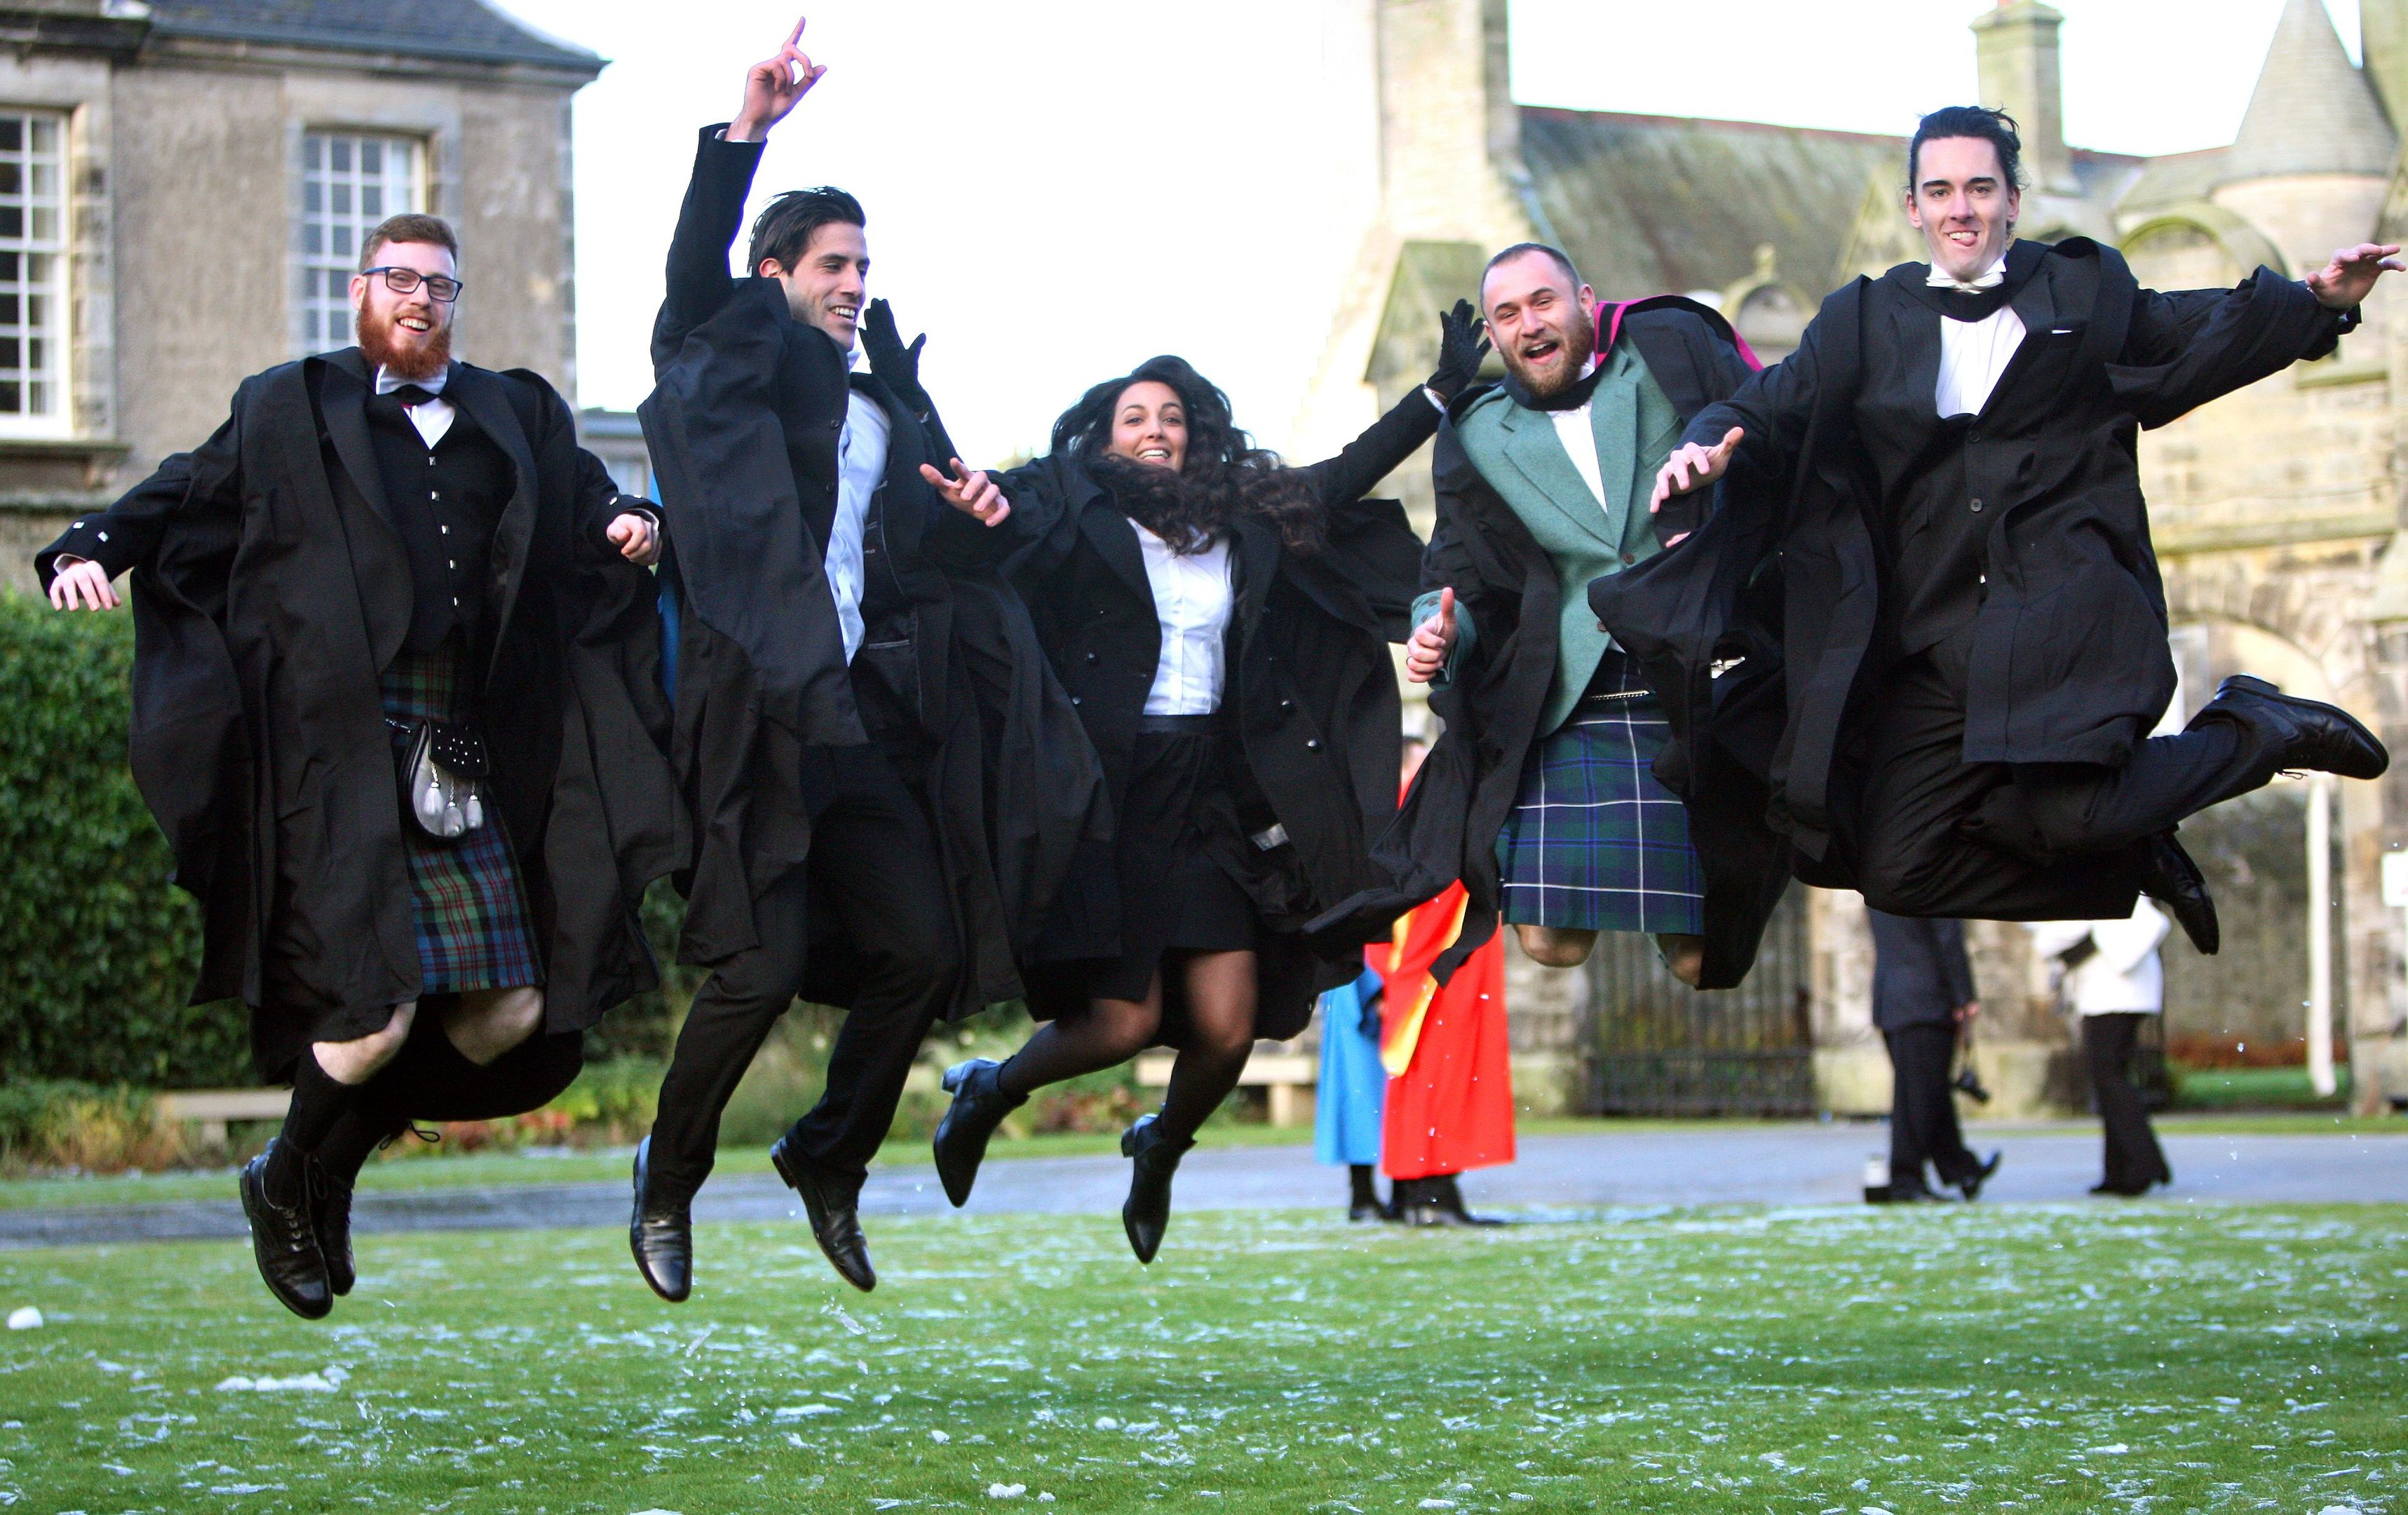 St Andrews students jumping for joy after graduating.